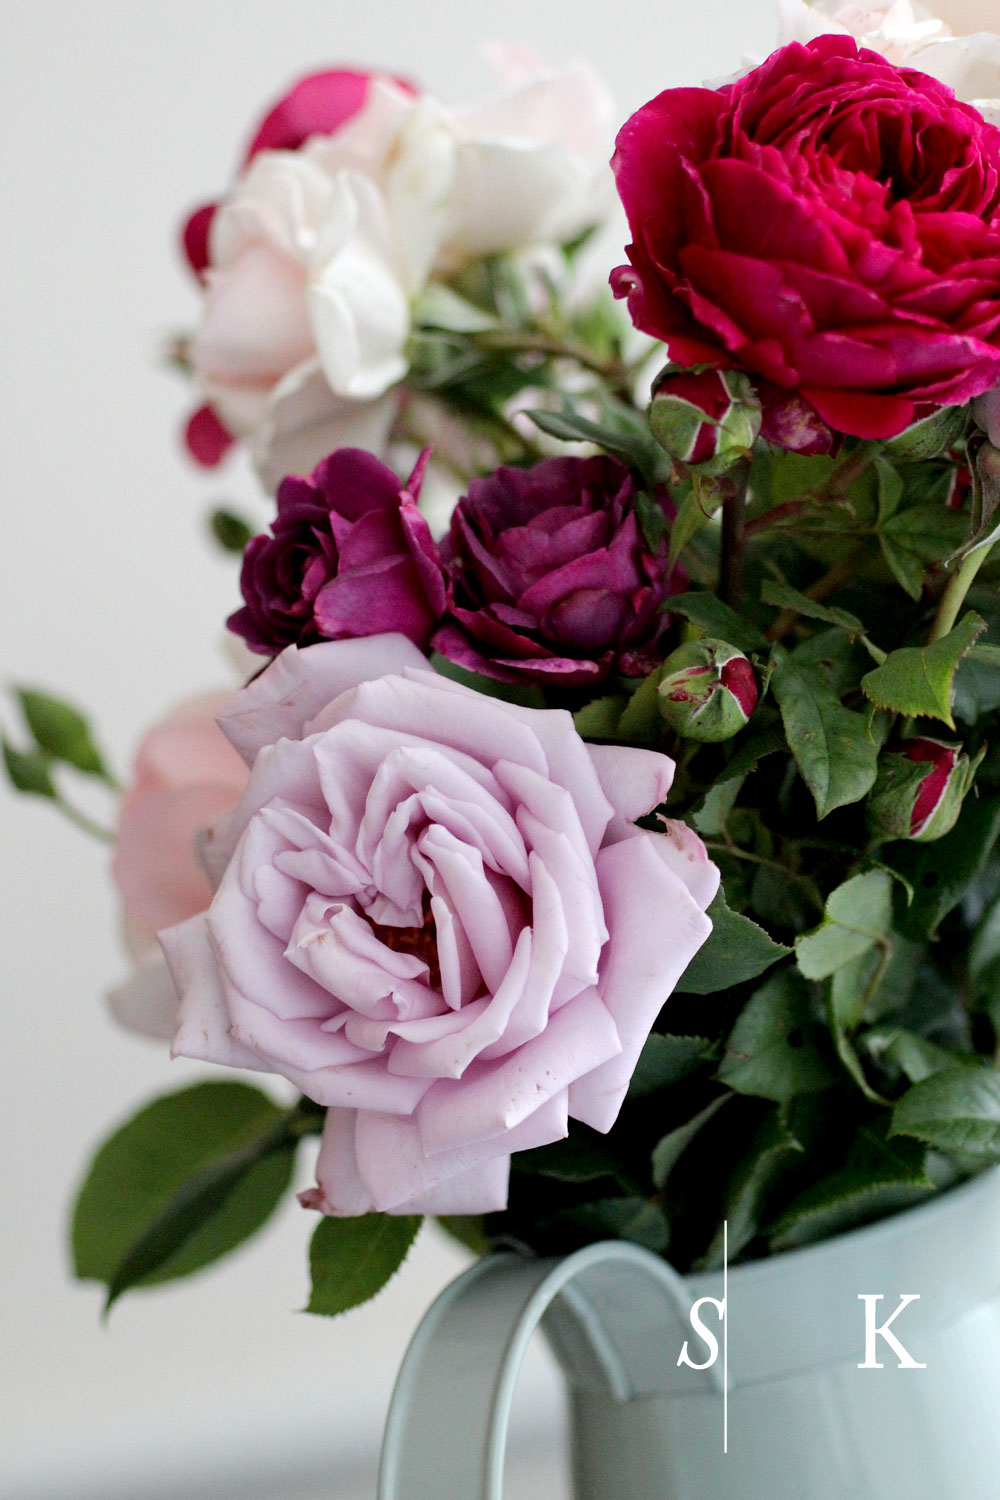 Roses from the garden in Cornwall